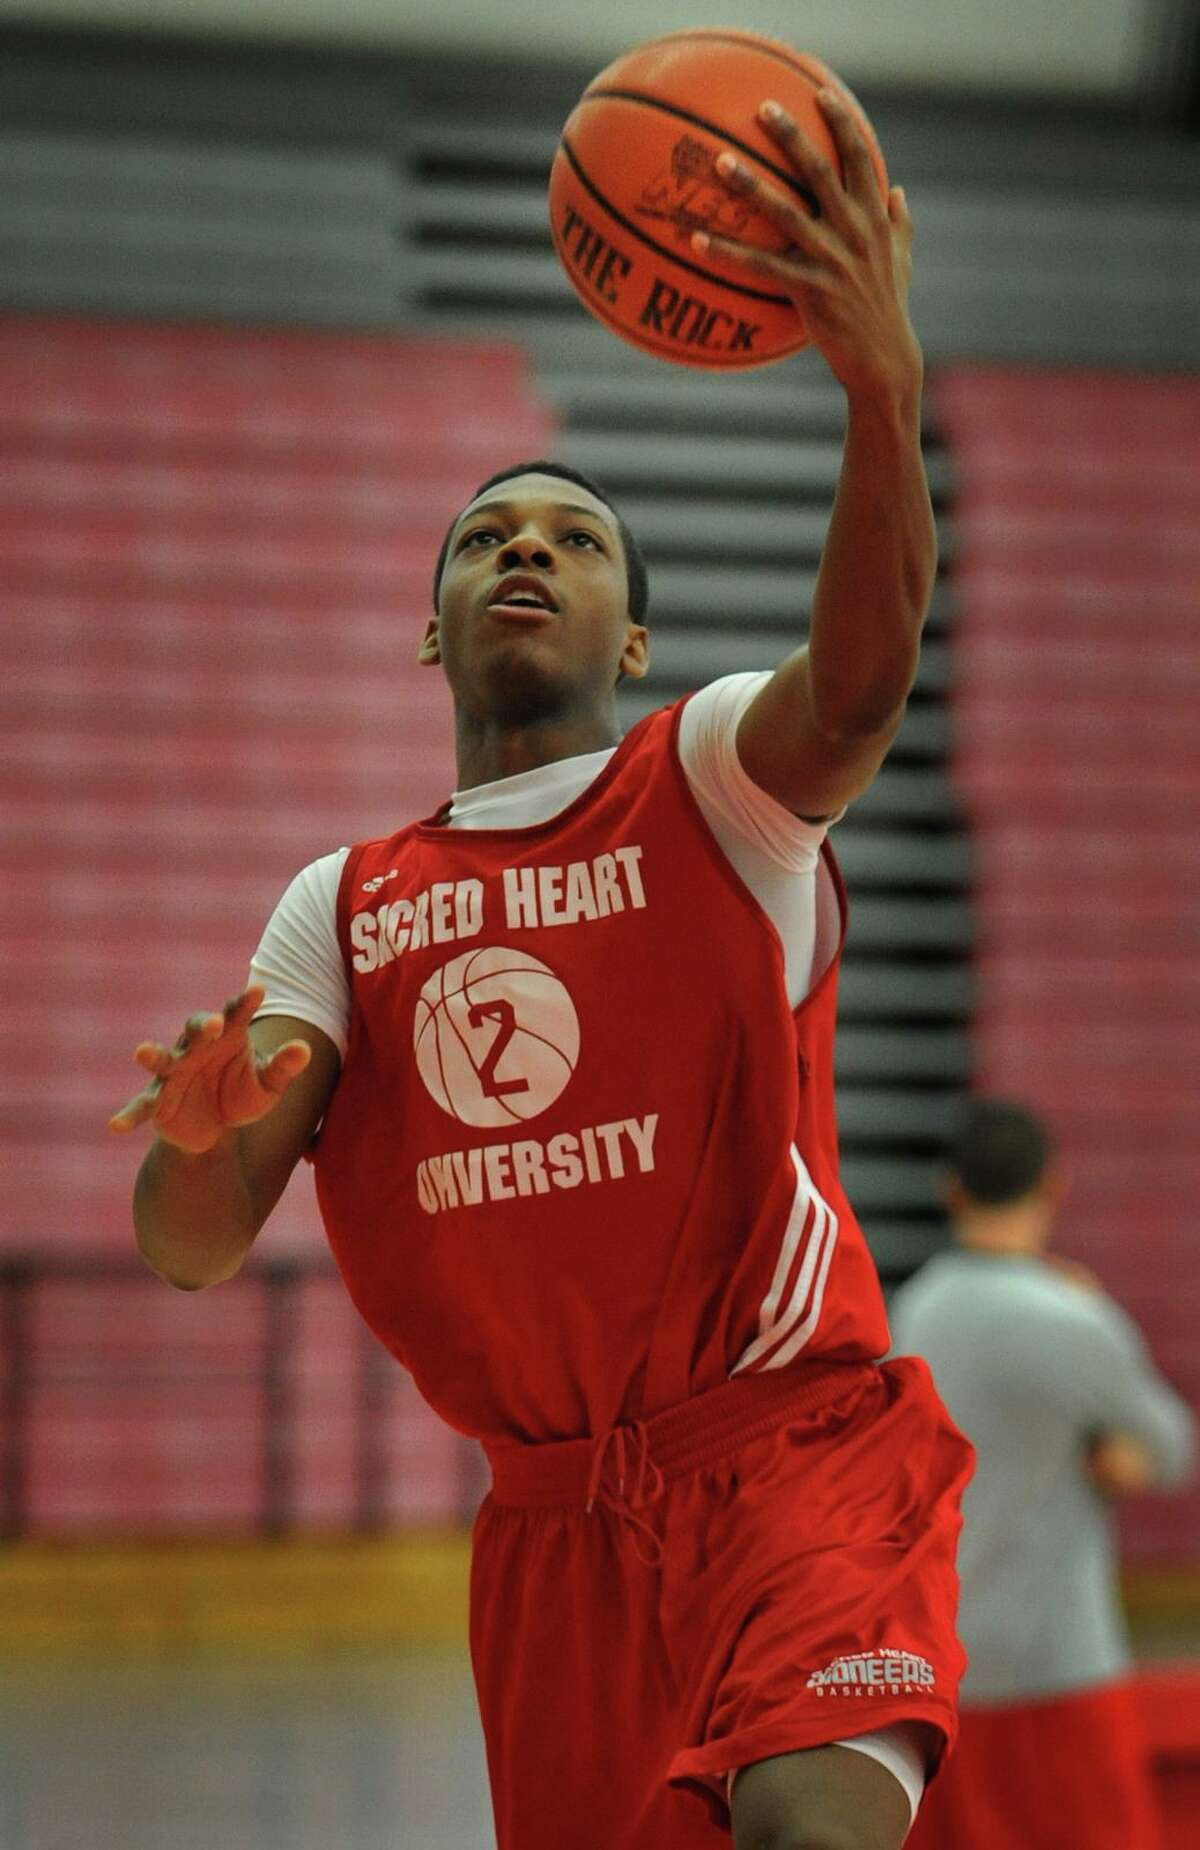 Sacred Heart University's Evan Kelly of Norwalk drives in for a lay-up during basketball practice at the Pitt Center.